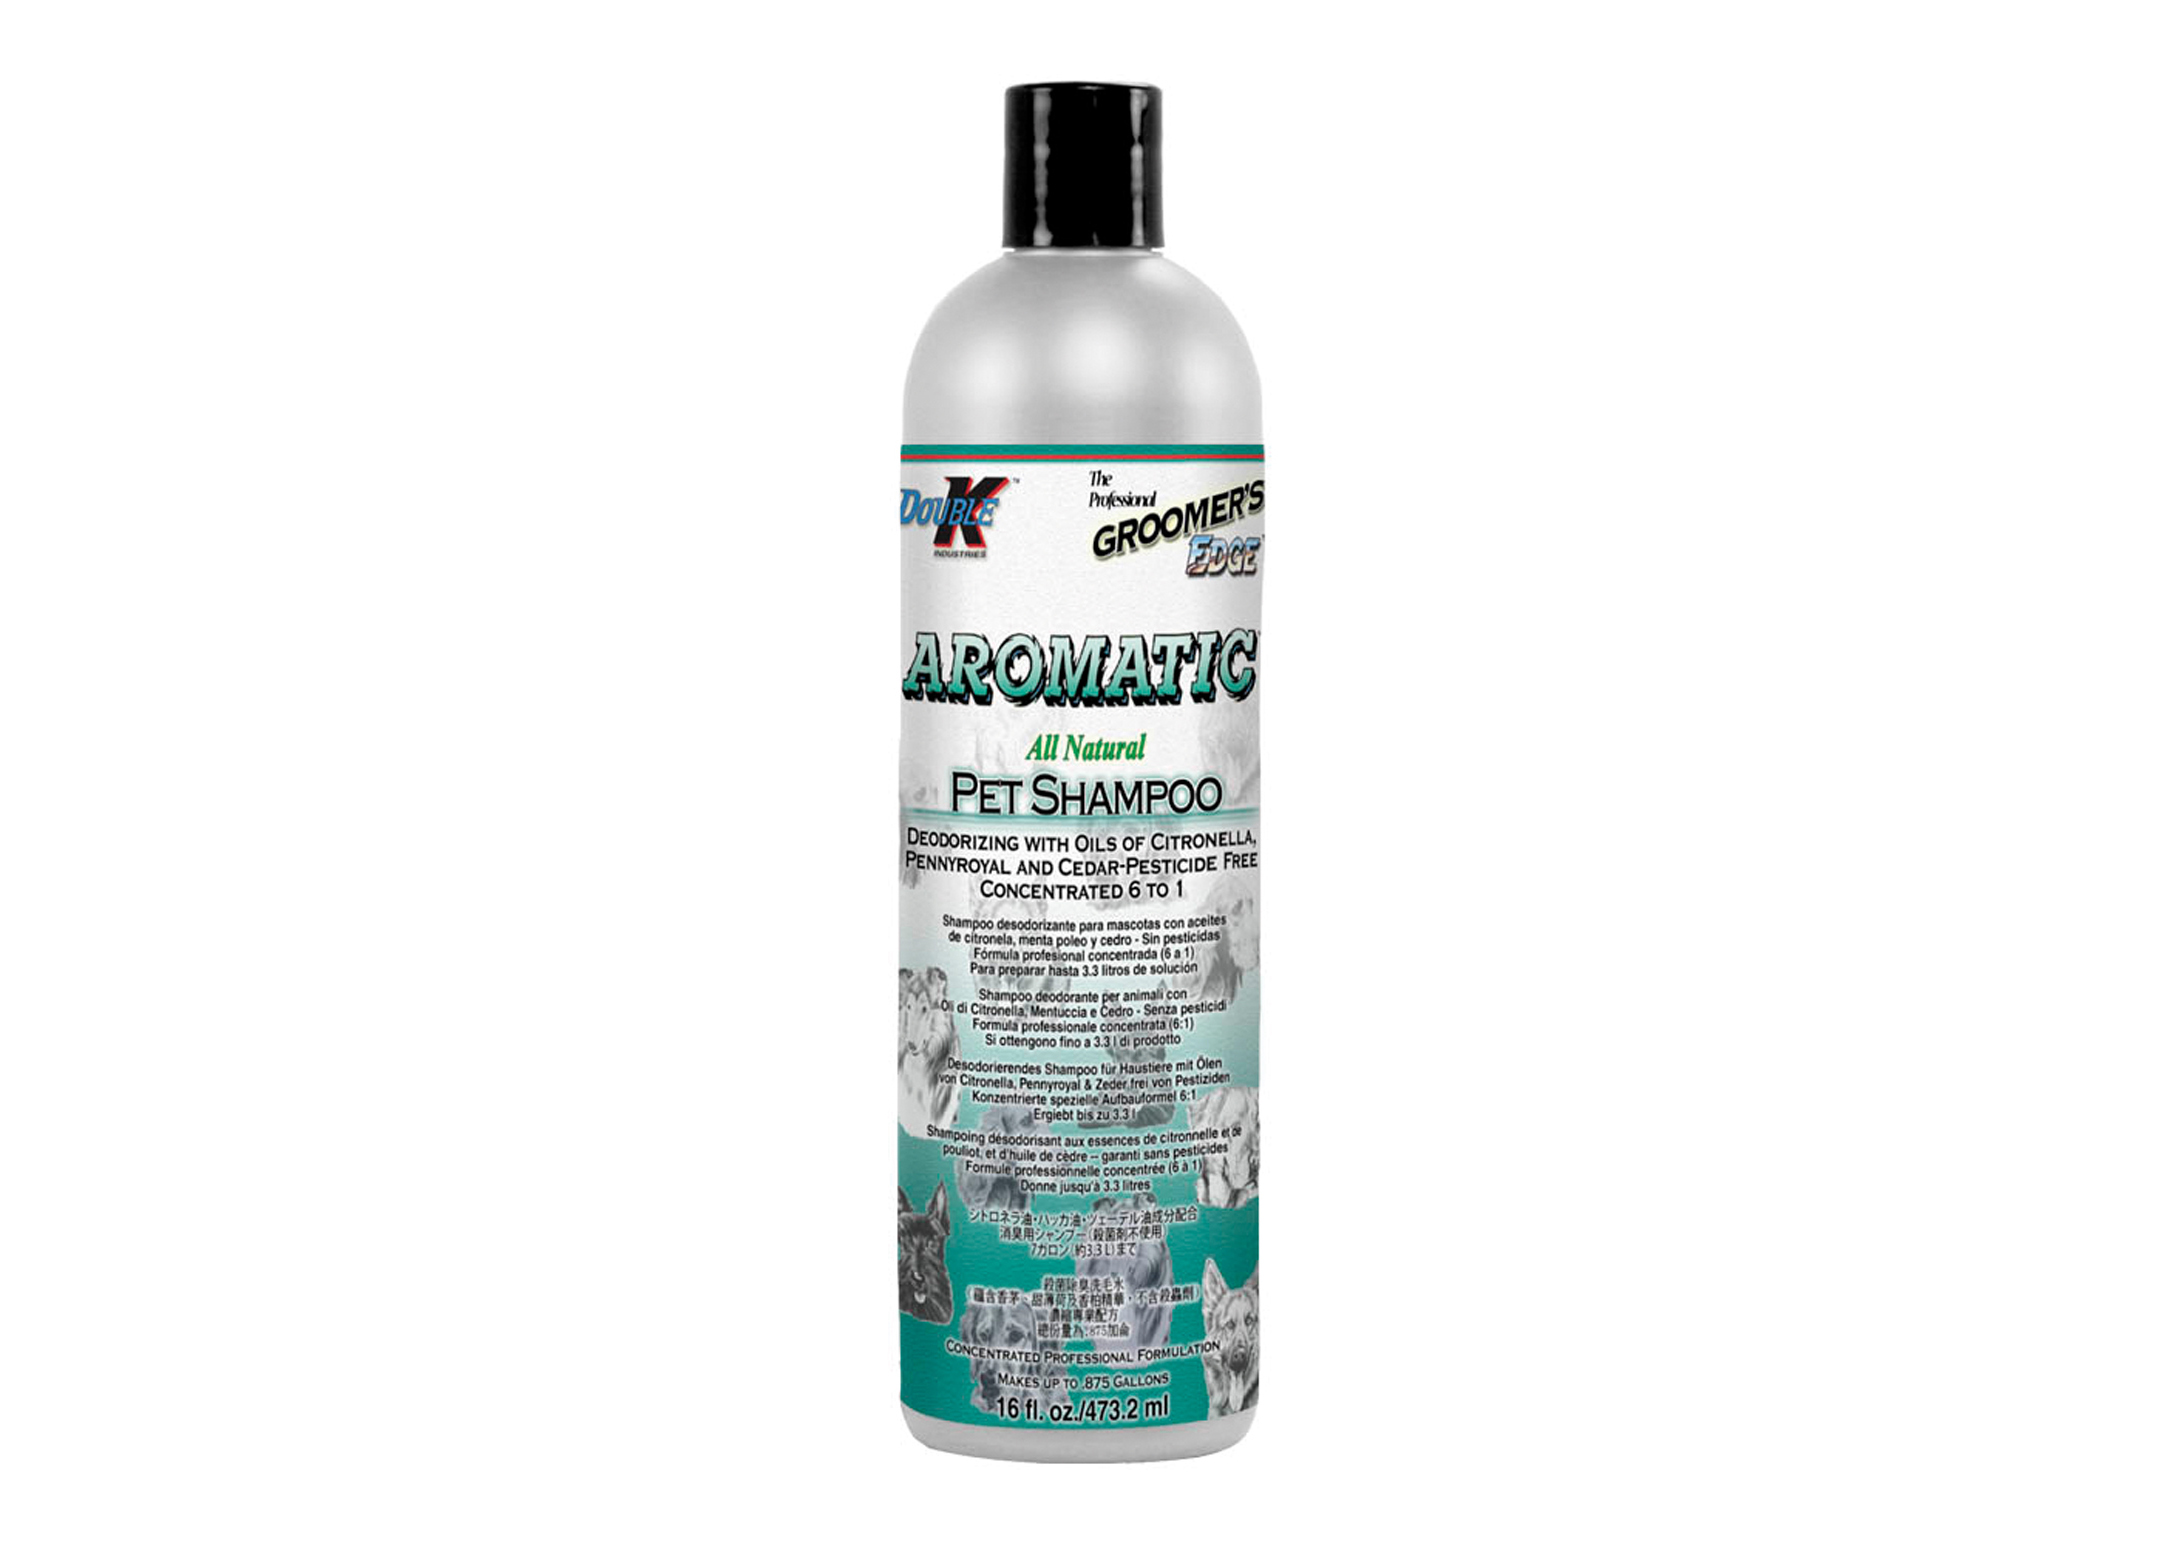 Double K Aromatic Shampooing Pour Chiens, Chats et Chevaux